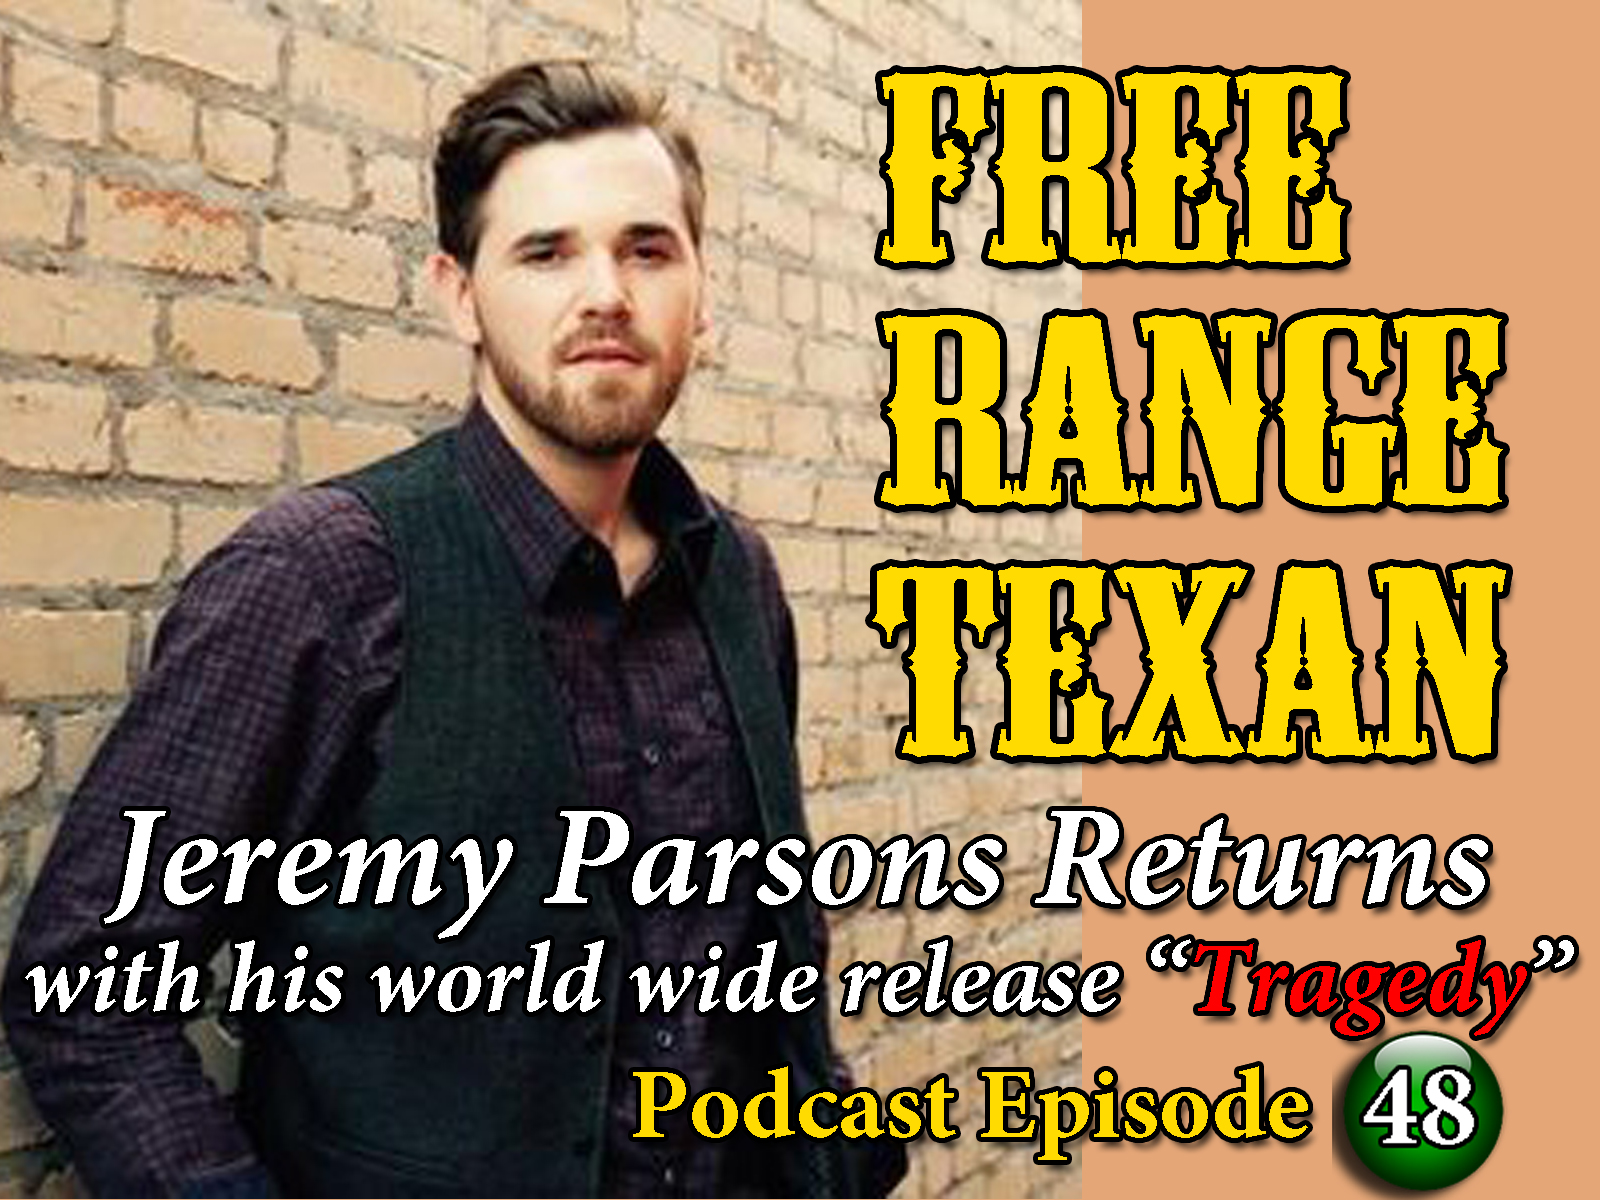 Free Range Texan Podcast Episode 48 Jeremy Parsons